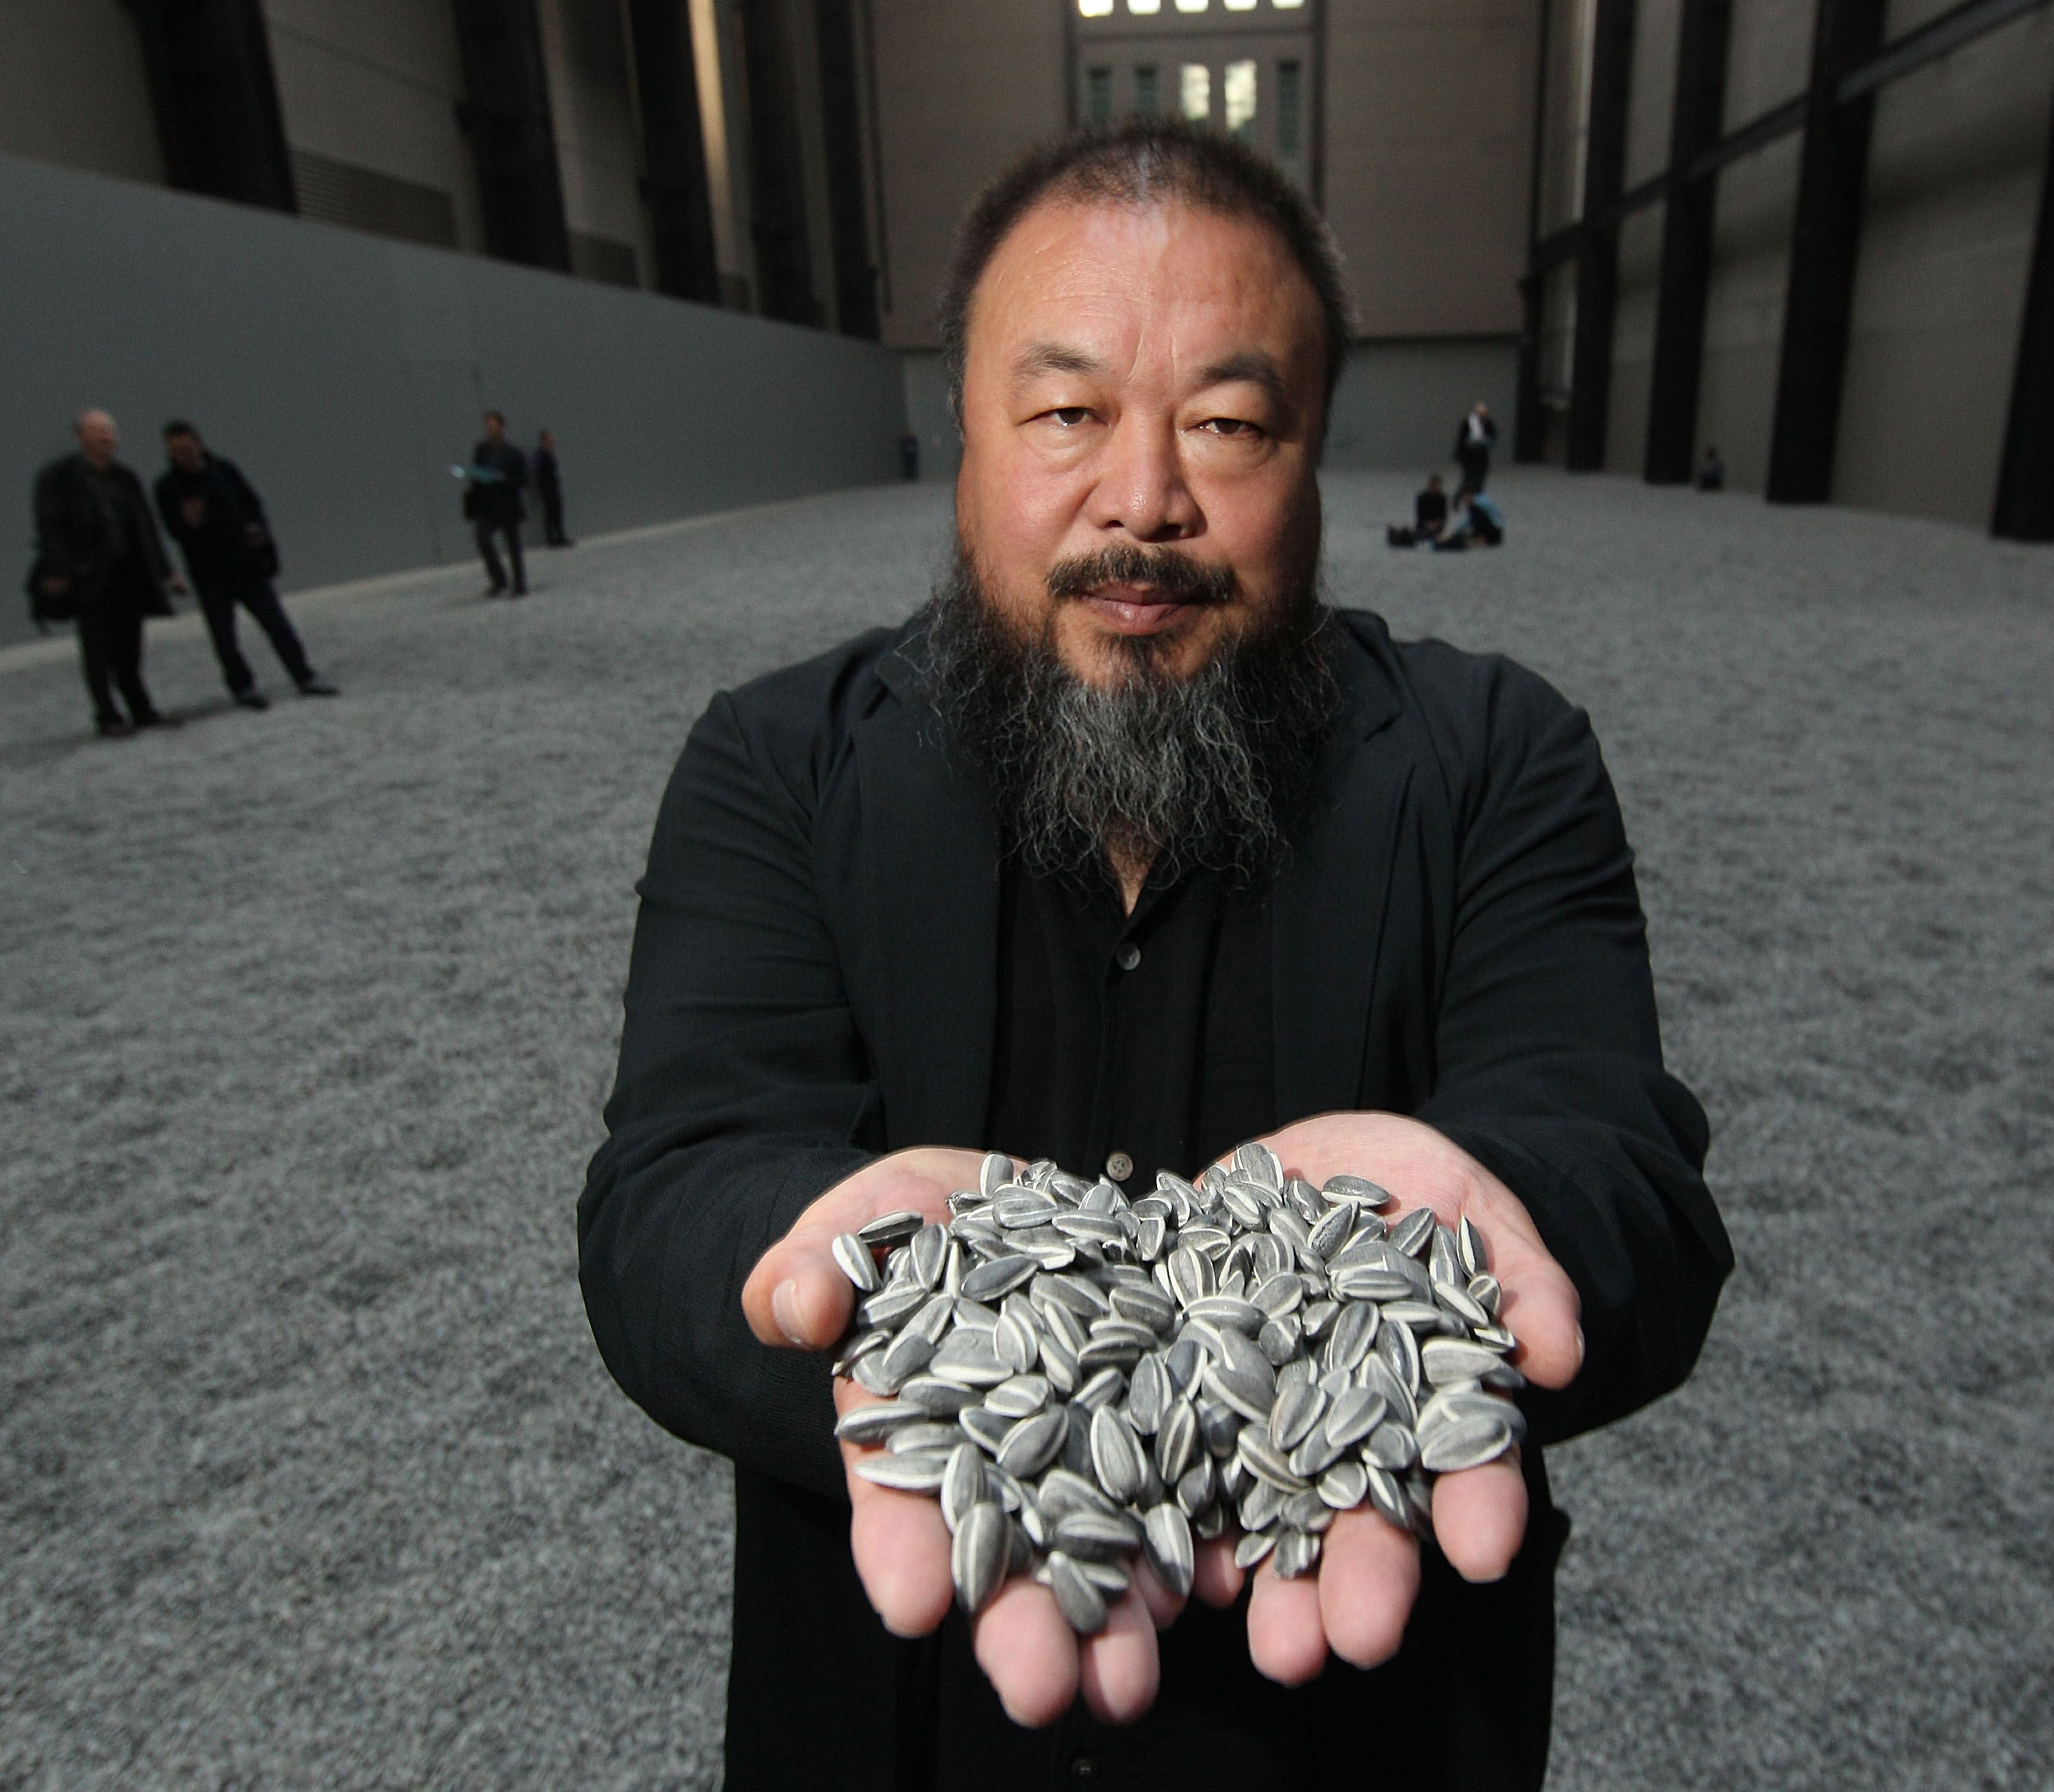 LONDON, ENGLAND - OCTOBER 11:  Chinese Artist Ai Weiwei holds some seeds from his Unilever Installation 'Sunflower Seeds'  at The Tate Modern on October 11, 2010 in London, England. The sculptural installation comprises 100 million handmade porcelain replica sunflower seeds. Visitors to the Turbine Hall  will be able to walk on the work - which opens on October 12, 2010 and runs until May 2, 2011.  (Photo by Peter Macdiarmid/Getty Images)